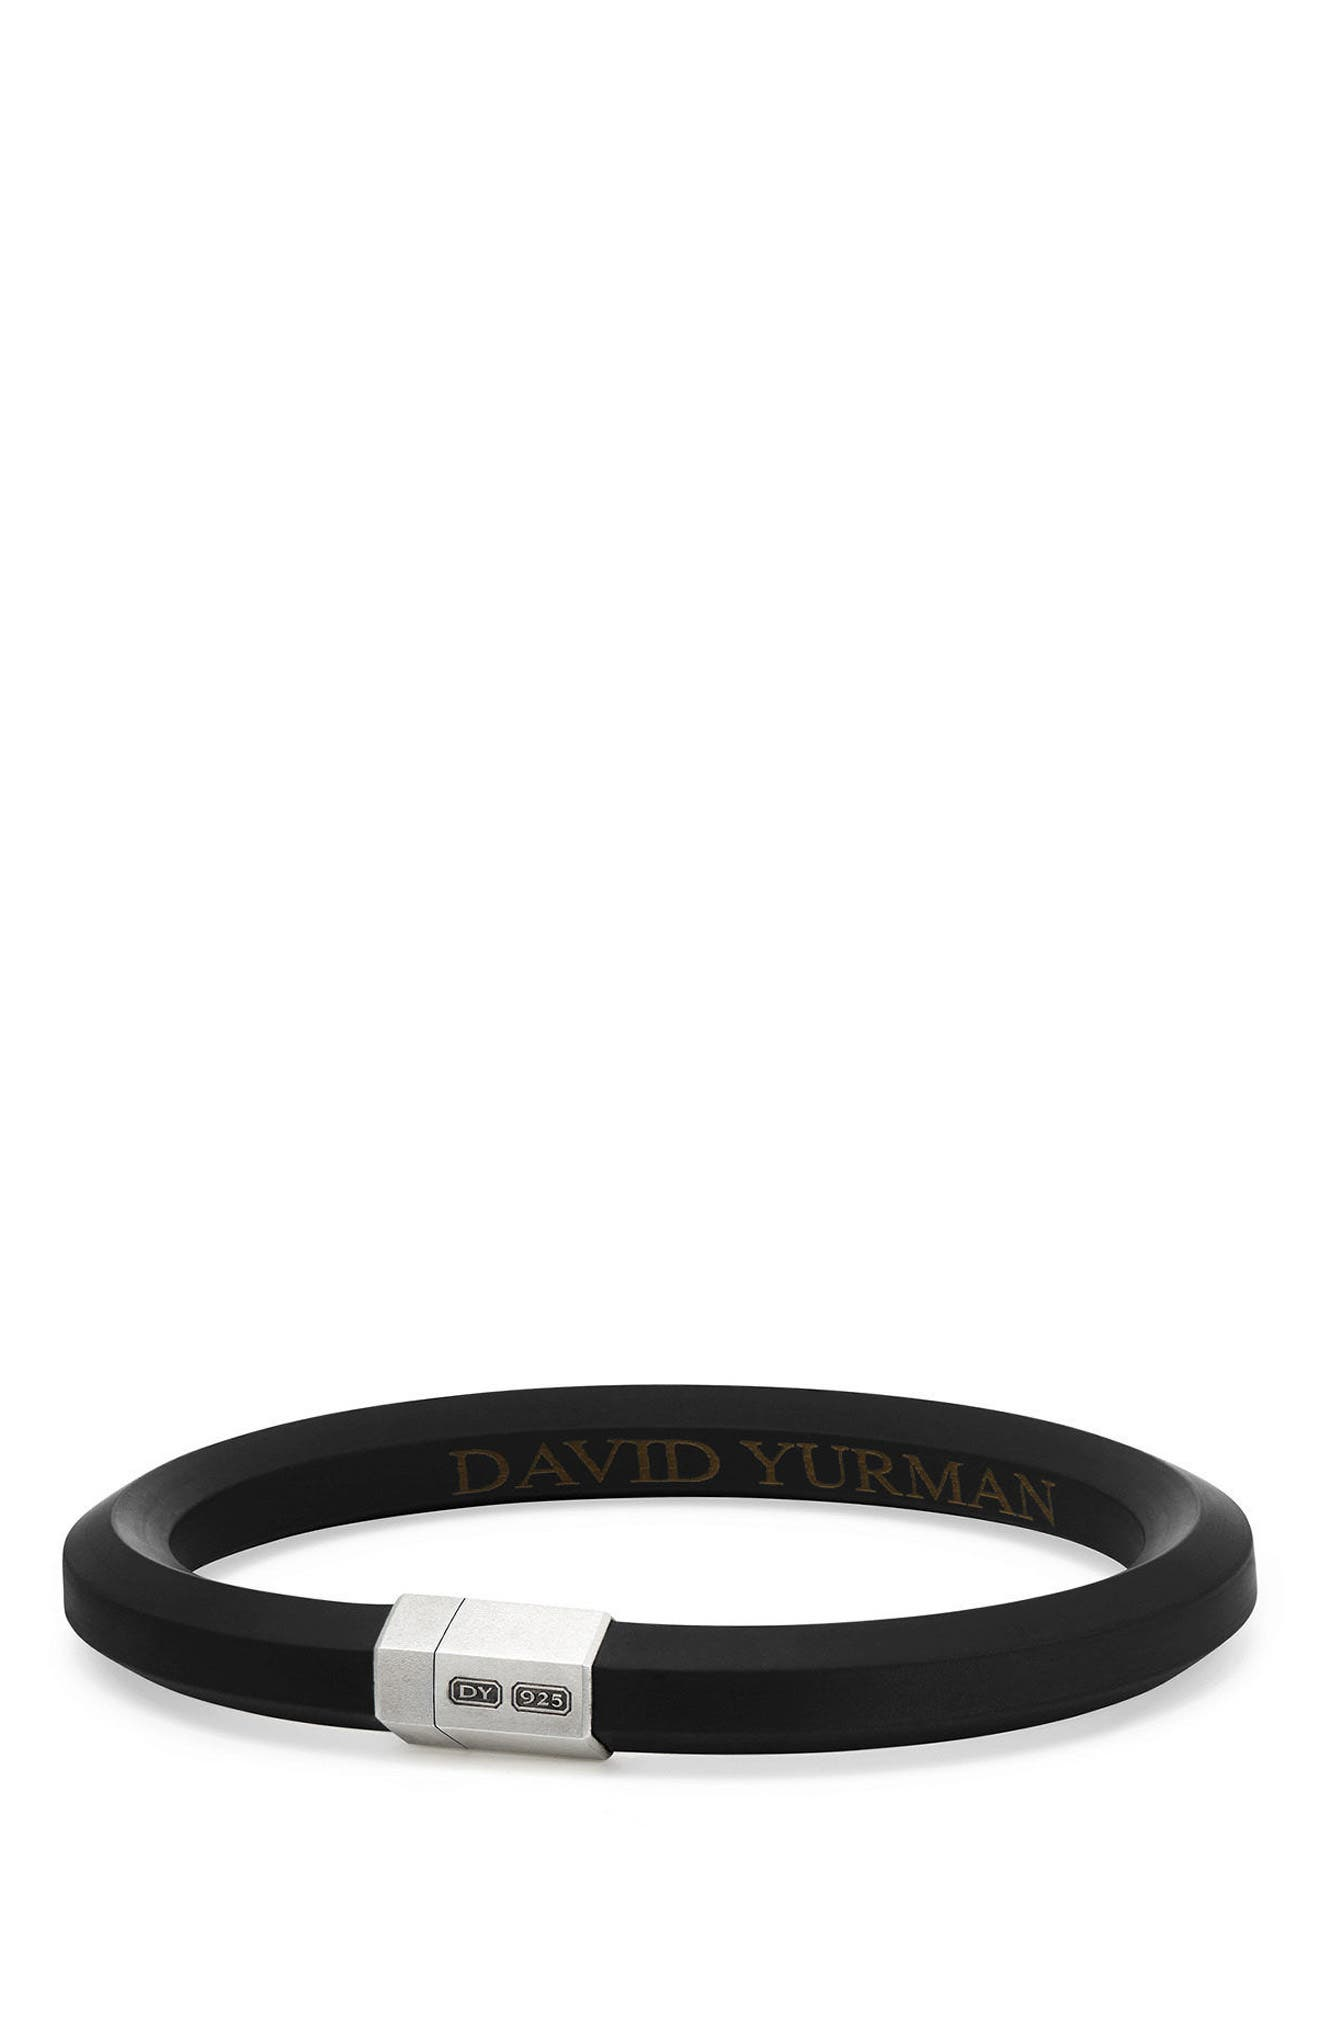 Alternate Image 1 Selected - David Yurman Streamline Rubber ID Bracelet in Black